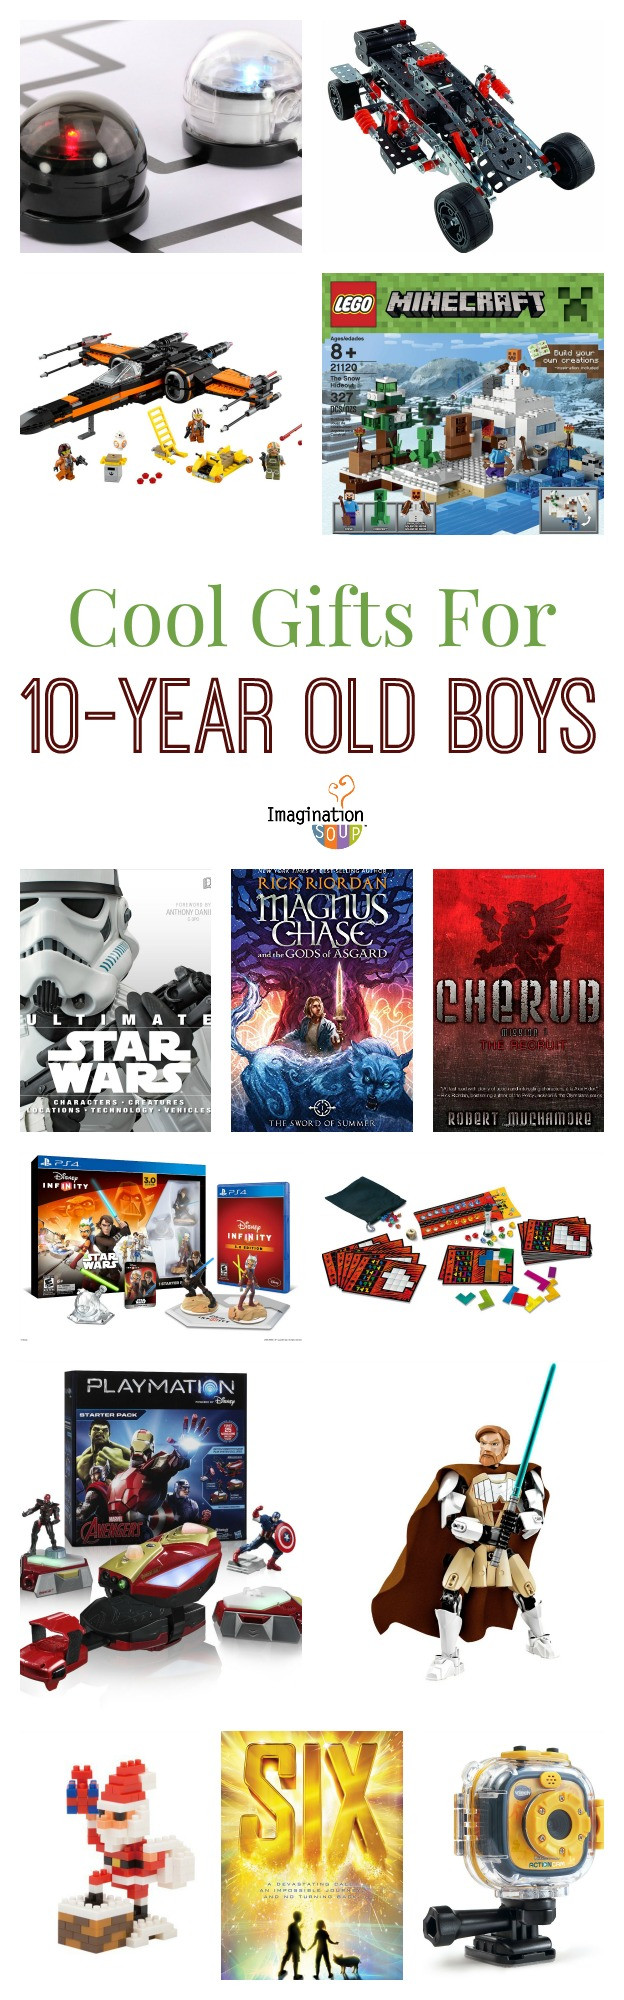 Best ideas about Gift Ideas For 10 Year Old . Save or Pin Gifts for 10 Year Old Boys Now.